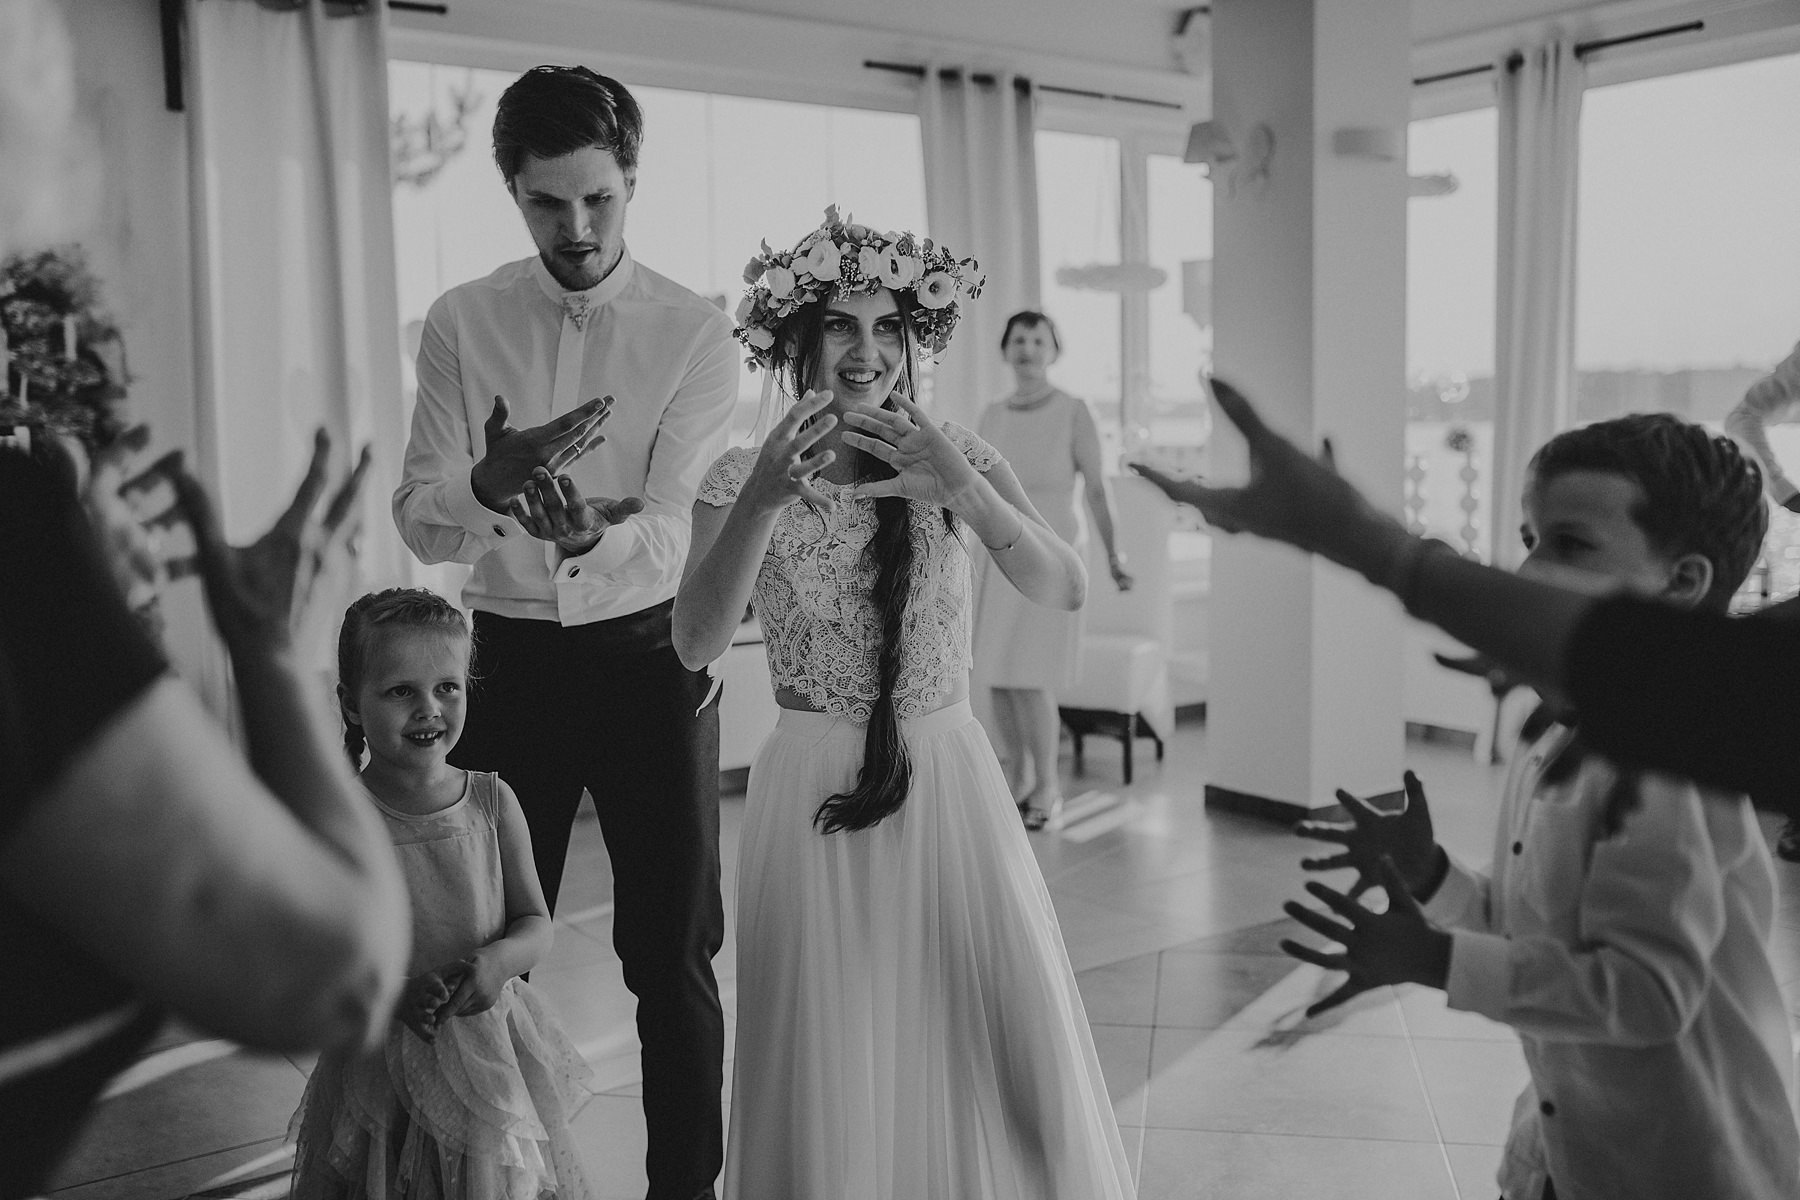 wedding photographer karol nycz reportaż